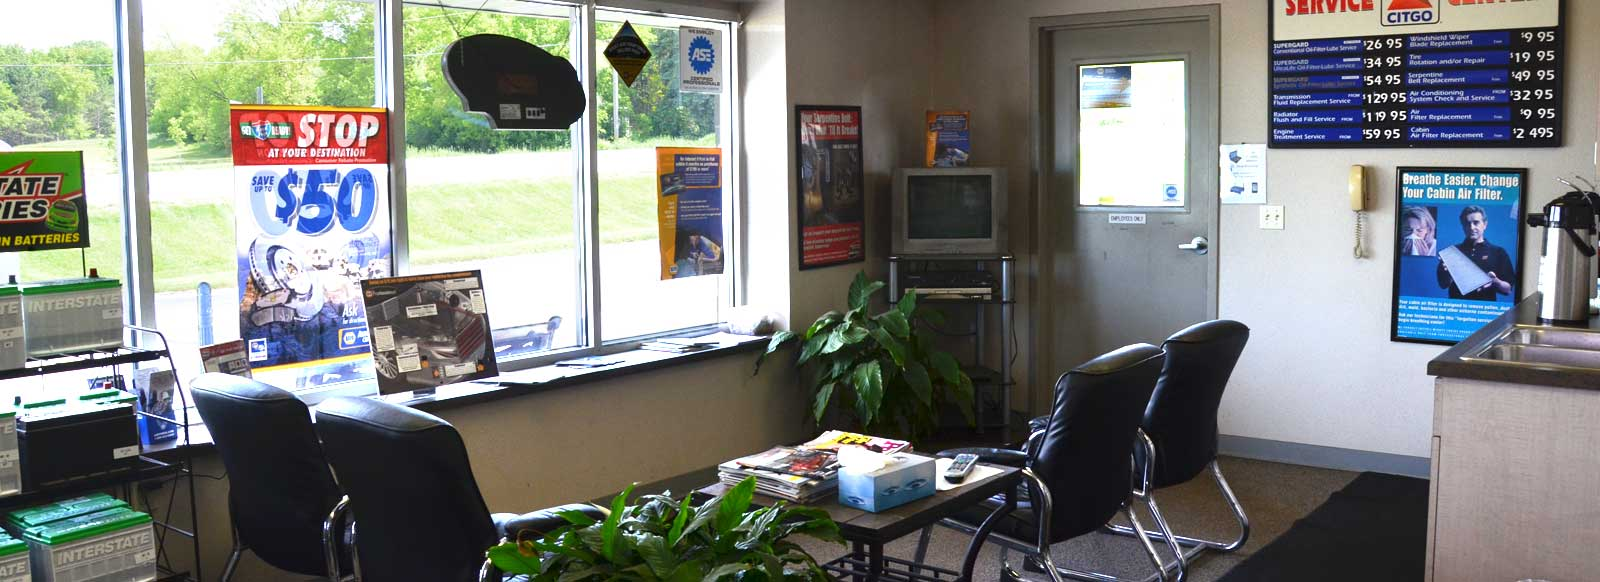 AFS Service Auto Repair Shop - Waiting Area